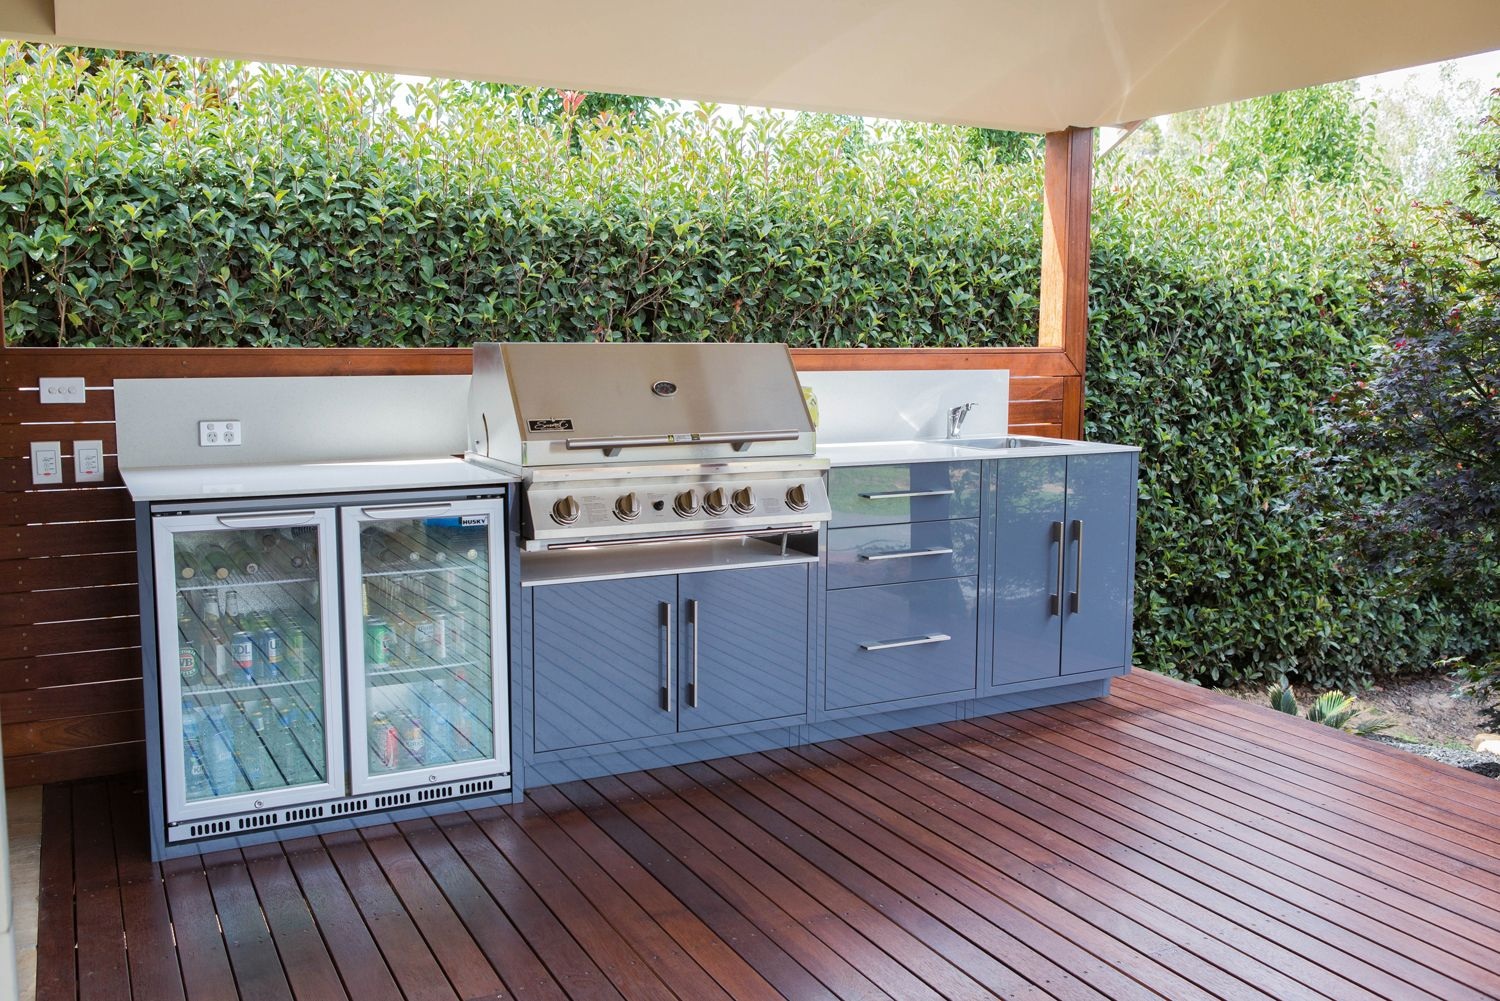 A look at outdoor kitchen solutions | My future... | Pinterest ...